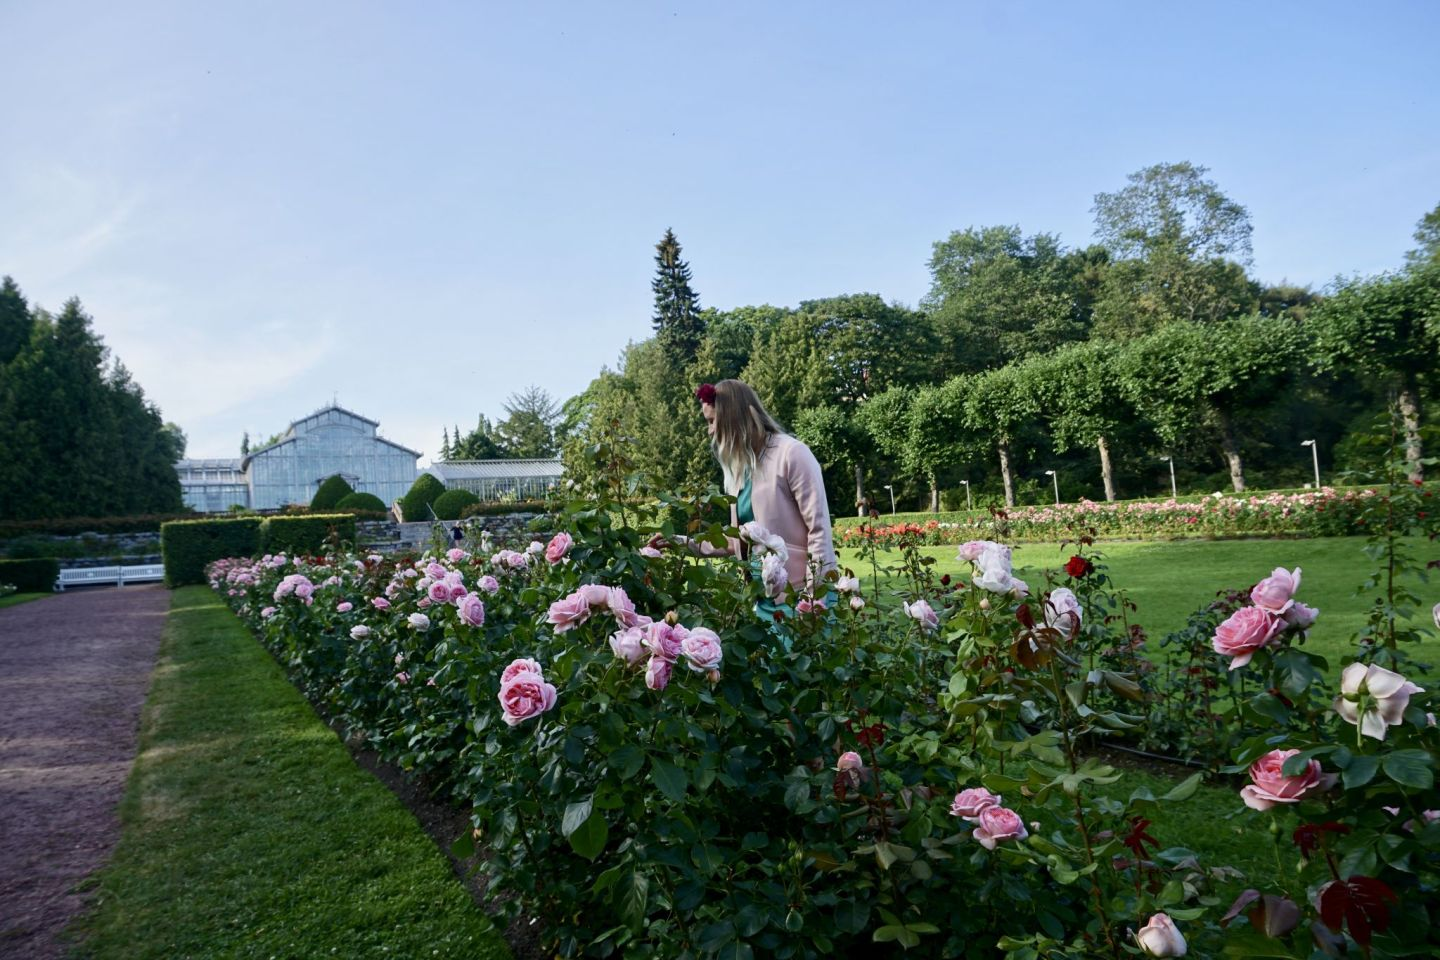 Visiting the Rose Garden by the Winter Garden in Helsinki is free